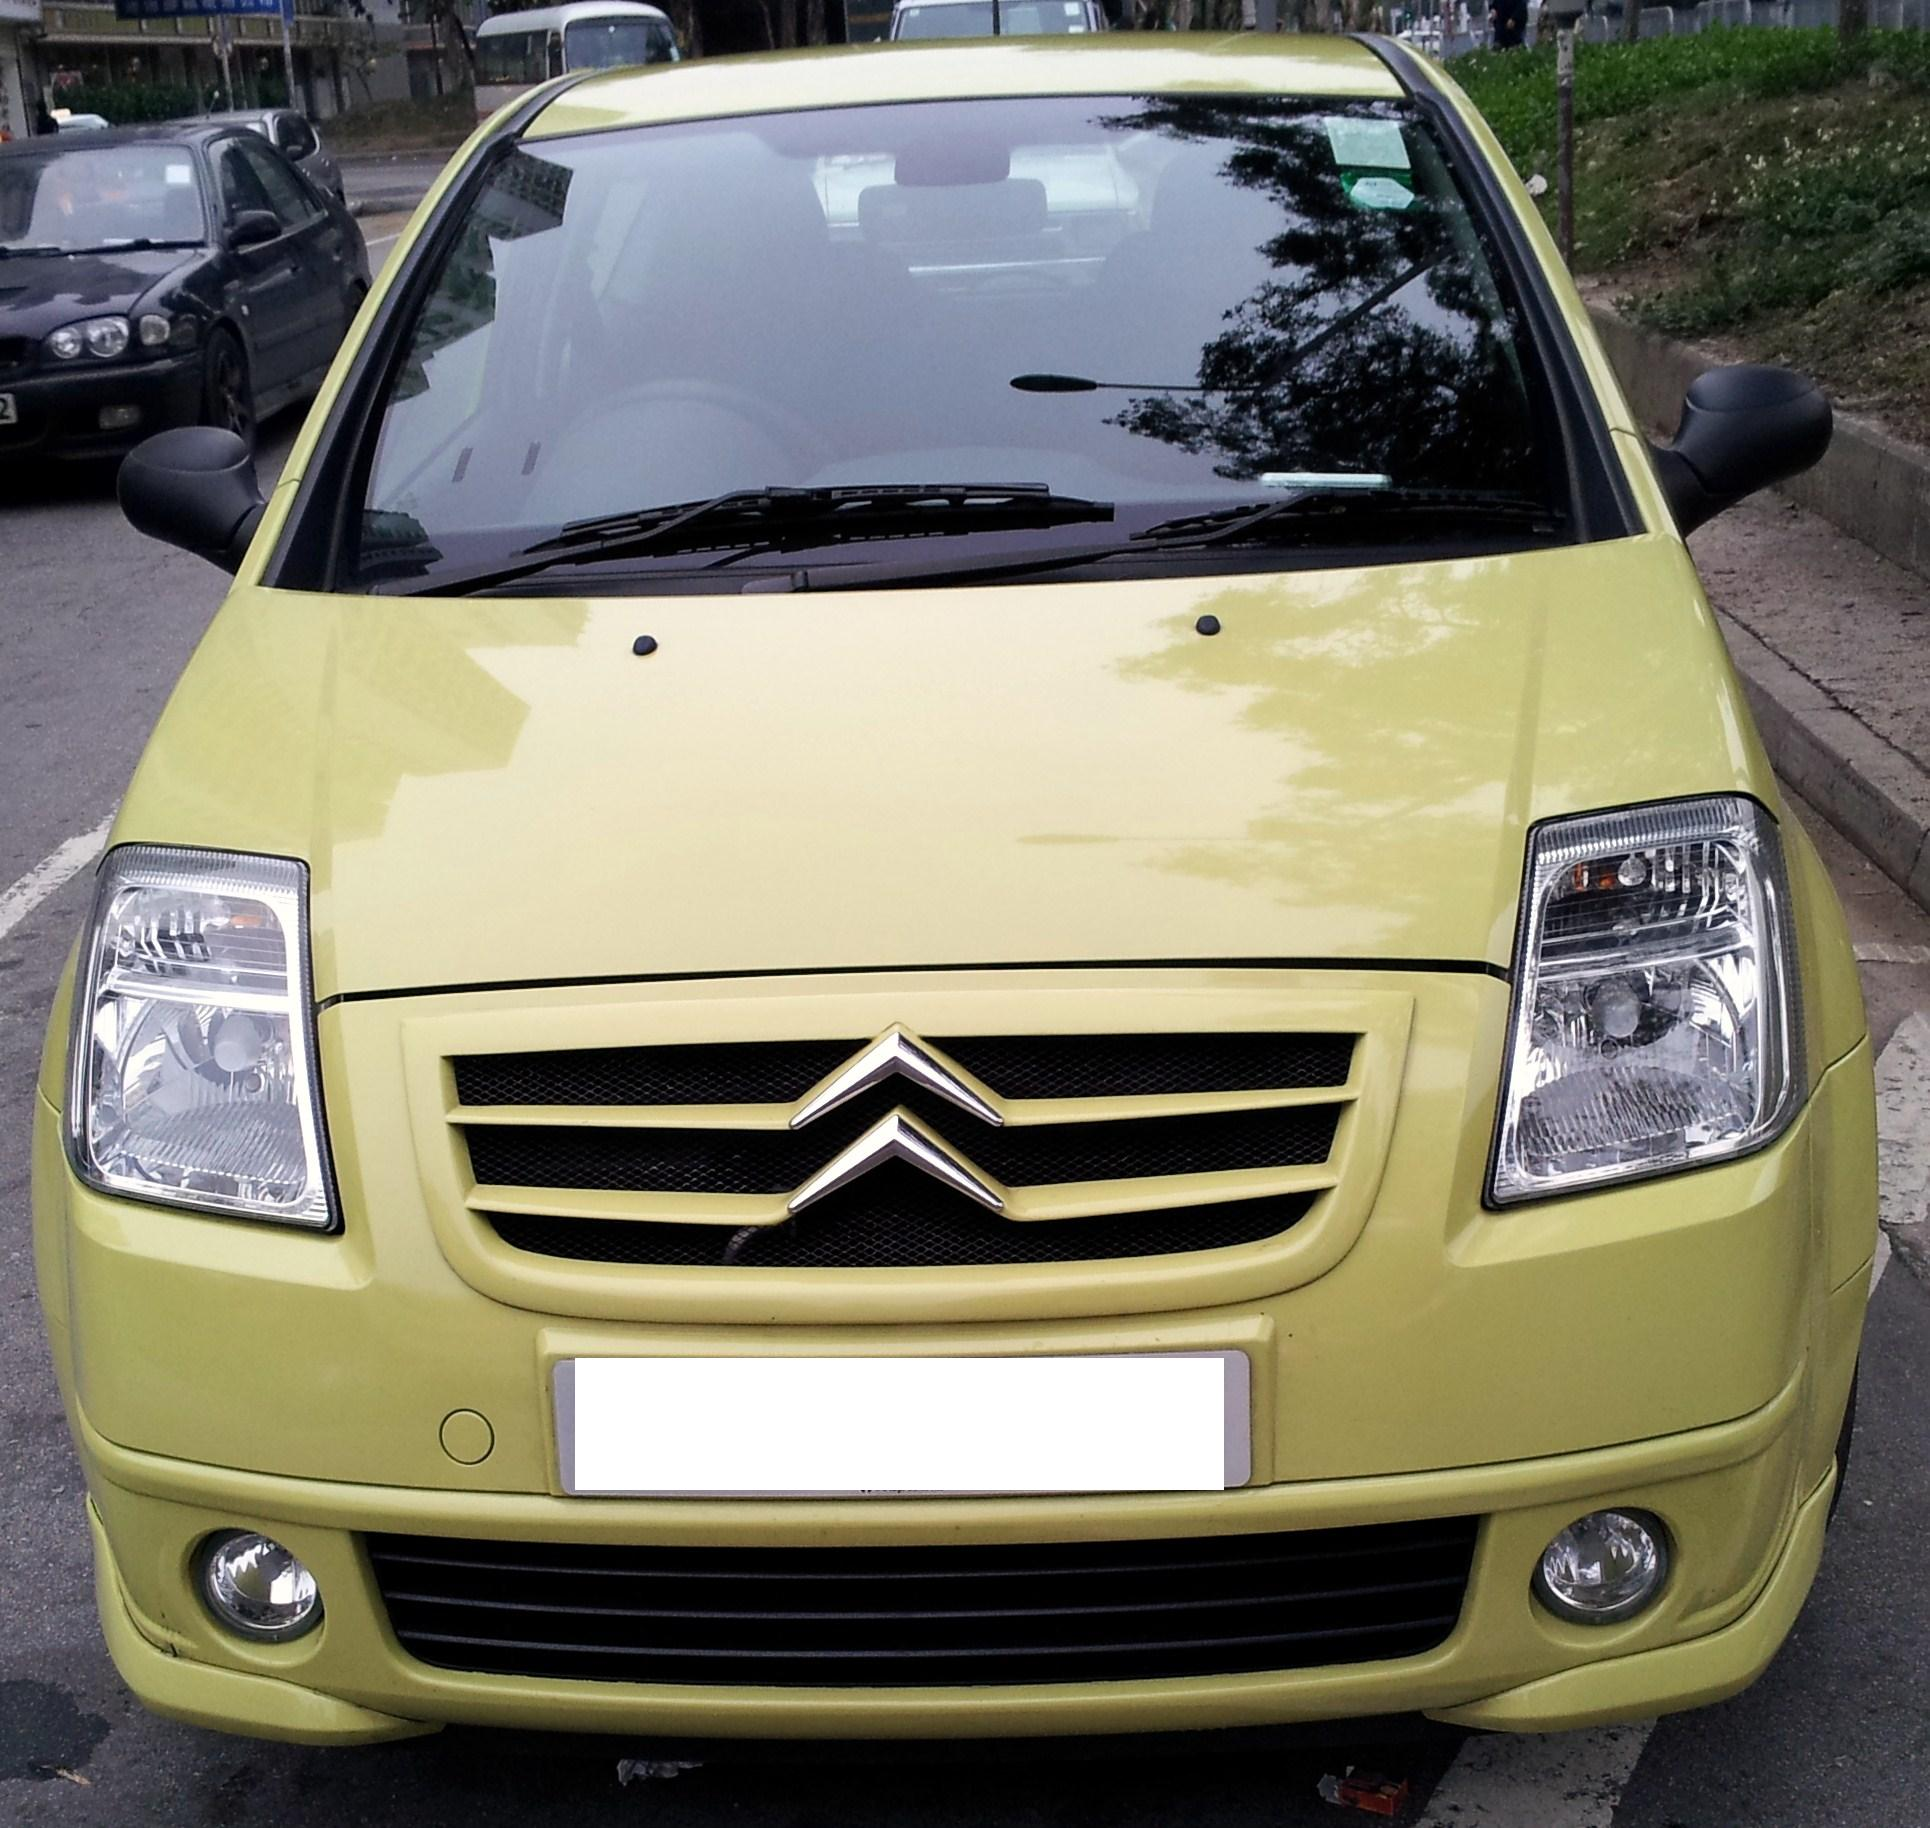 FOR SALE: Moving Out Sale Citroen C2